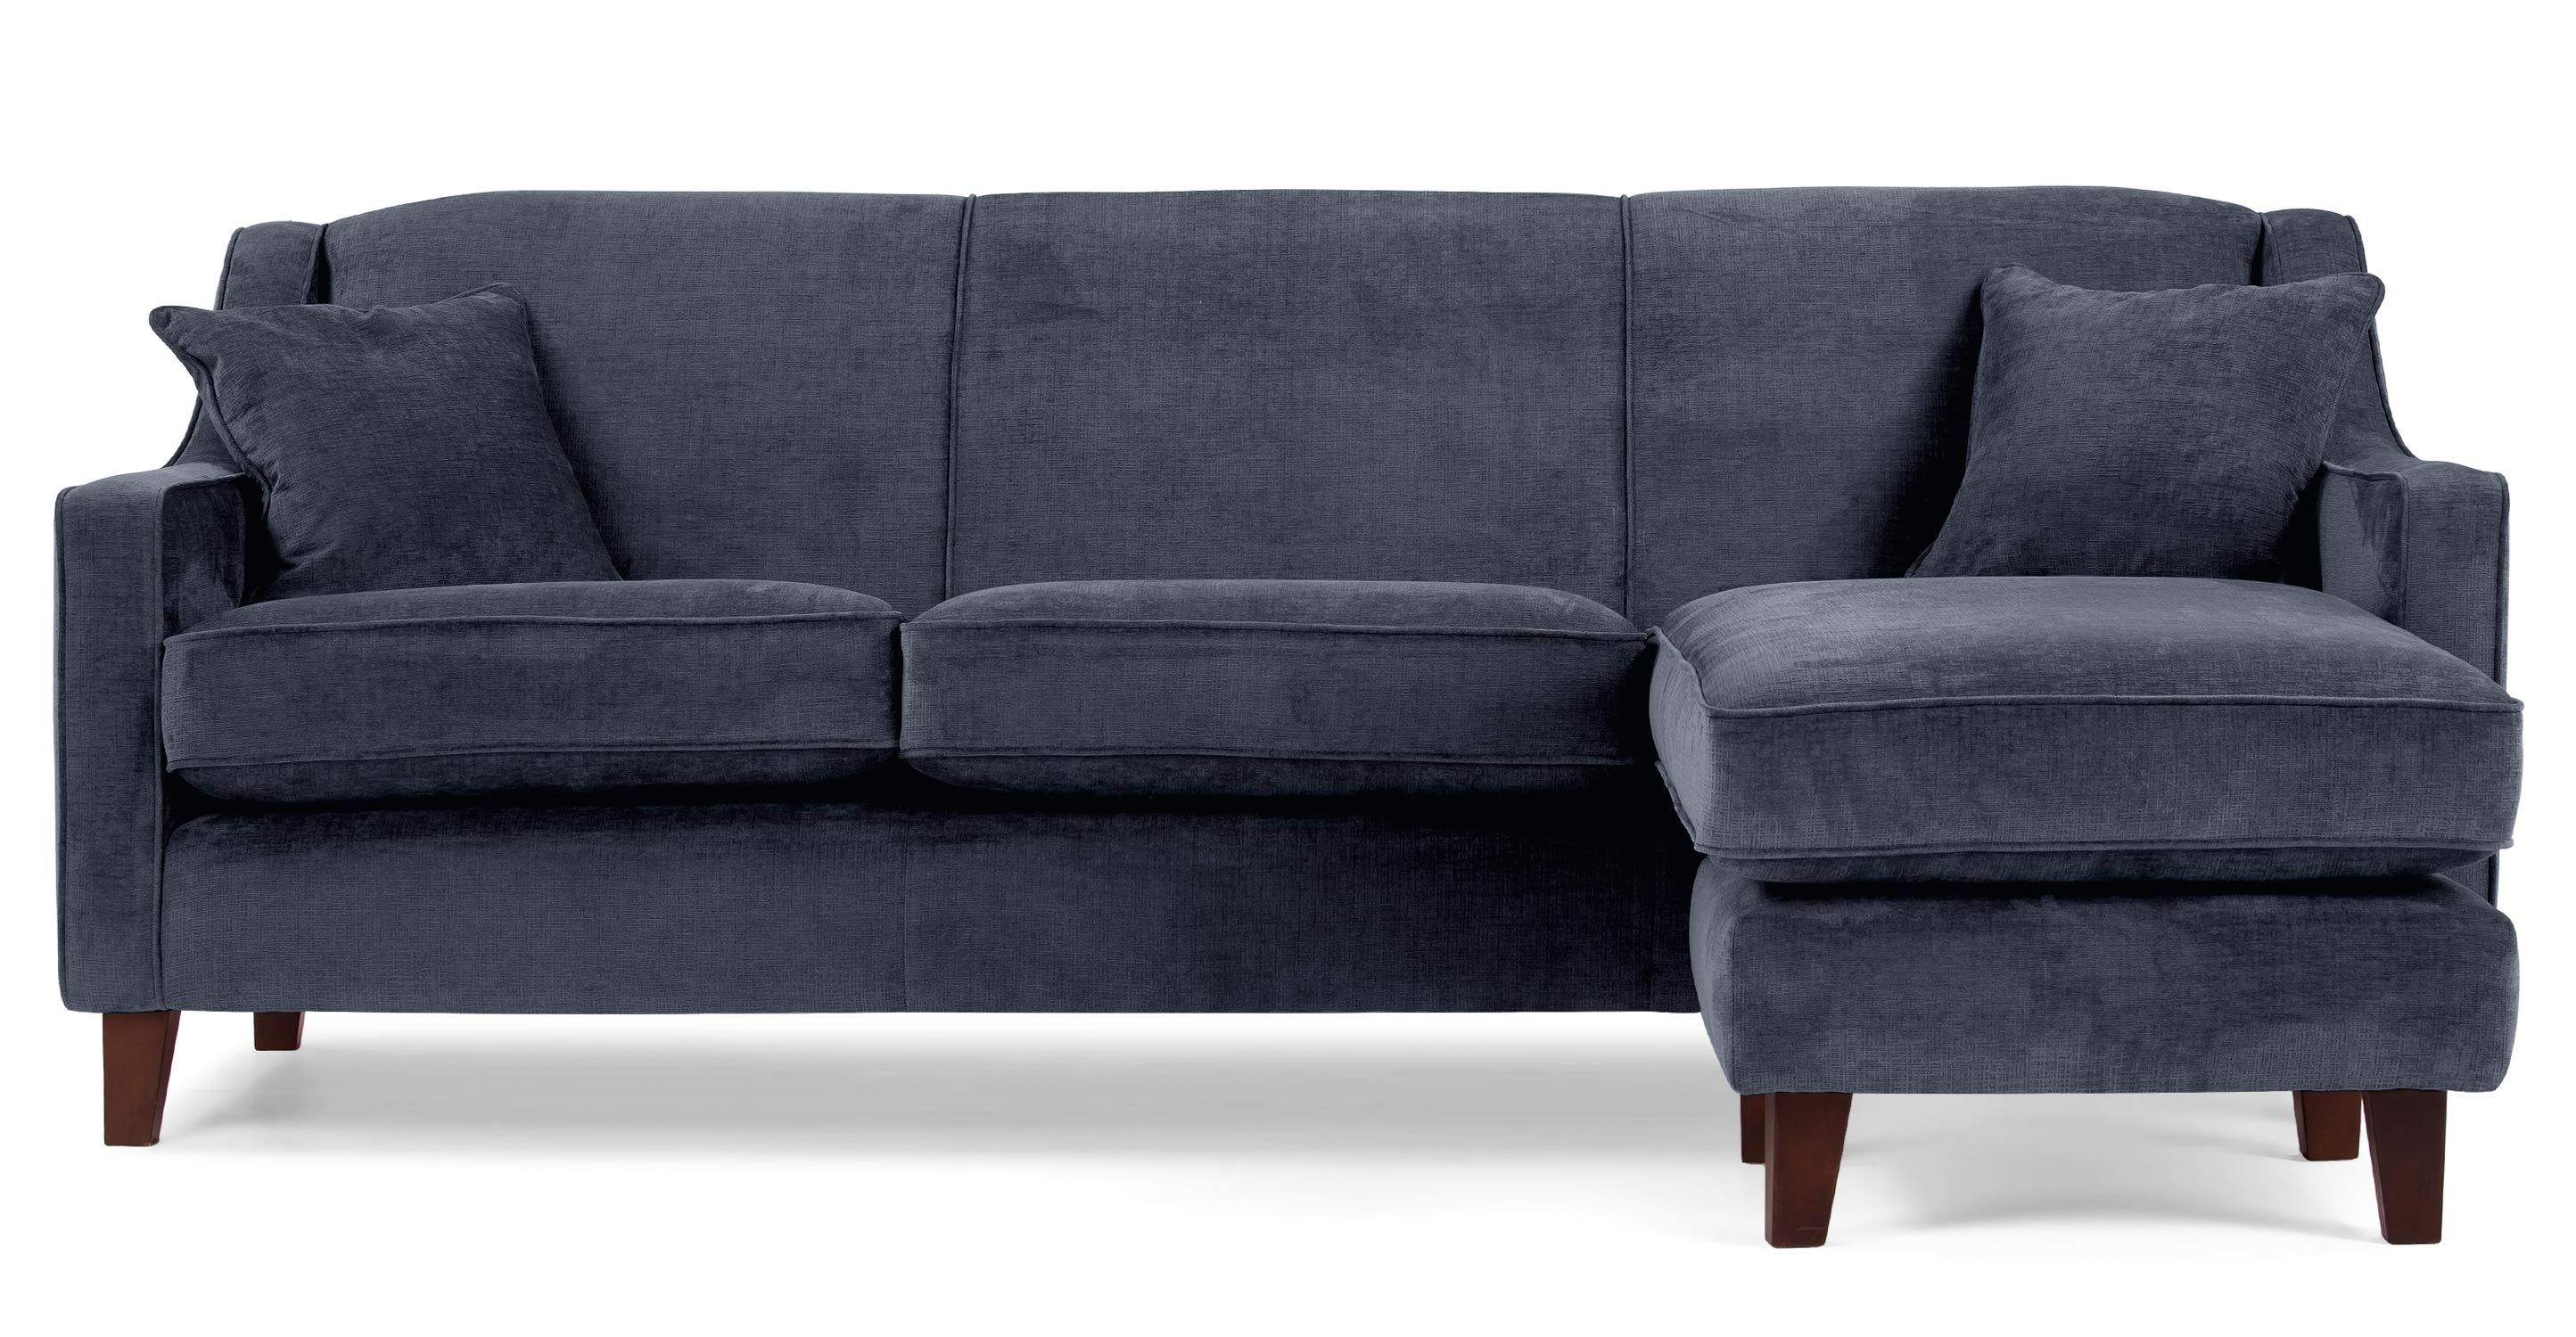 An Elegant Design Reminiscent Of The 1920s The Halston Large Corner Sofa In Midnight Blue Has A Deep Comfy Sea Corner Sofa Grey Corner Sofa Blue Corner Sofas